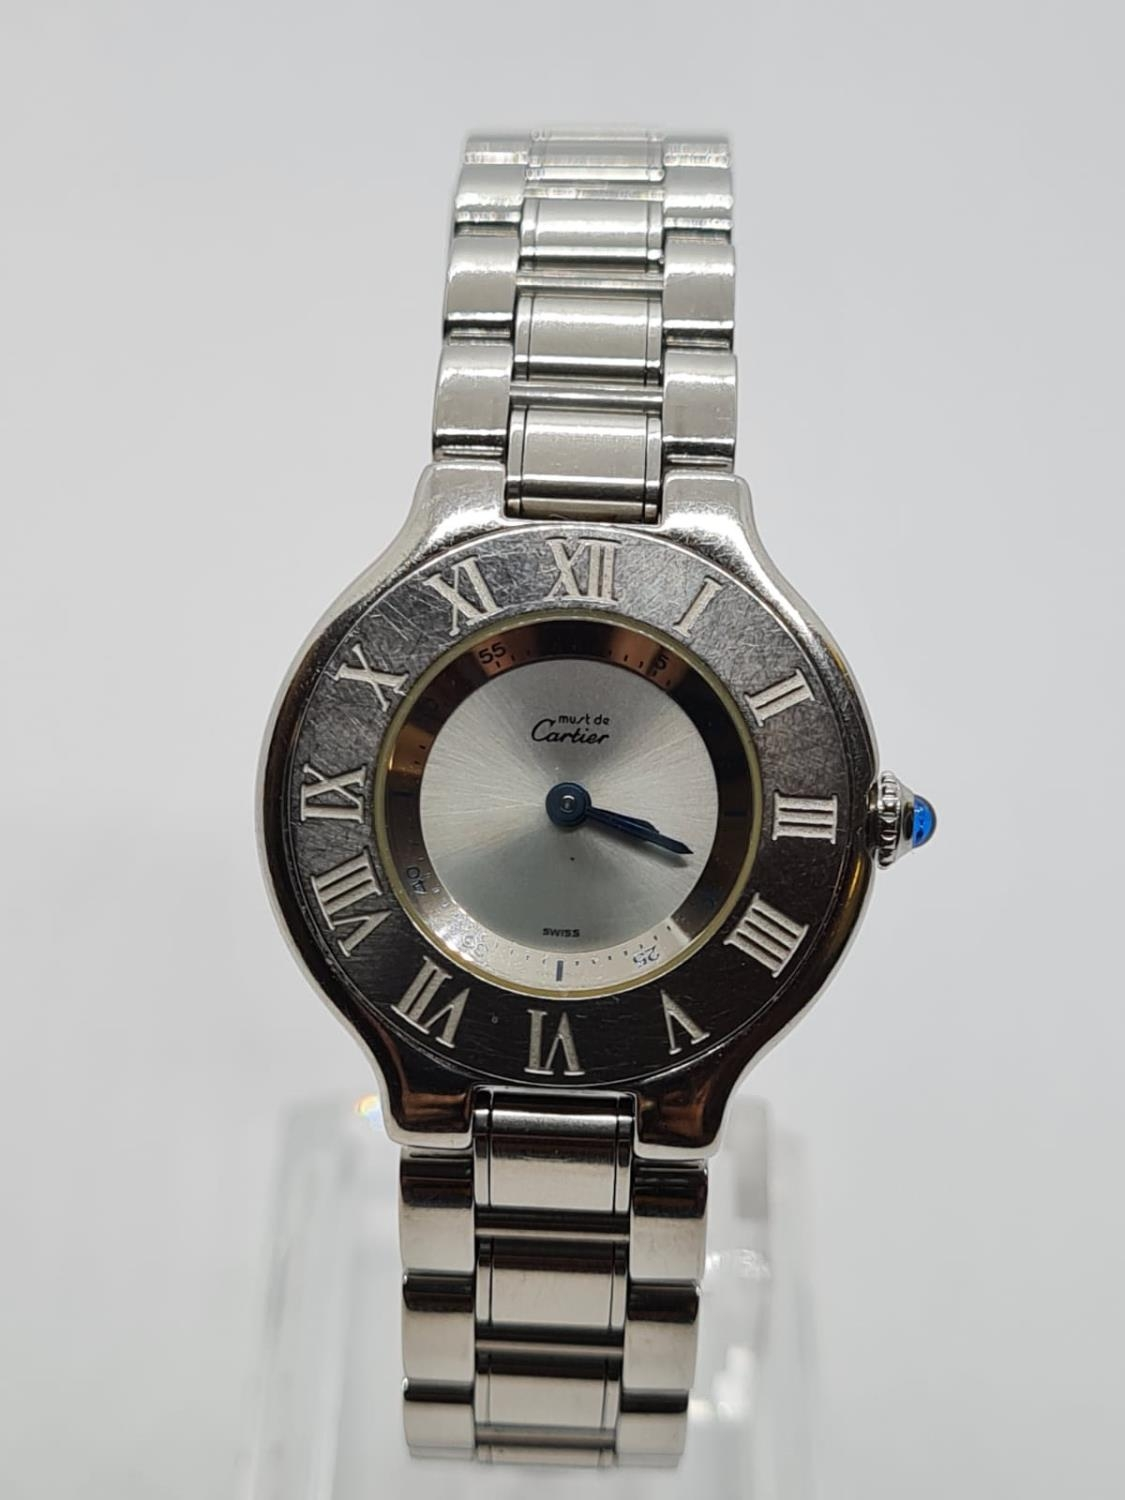 Must de Cartier Ladies WATCH with round face and Roman Numerals. 28mm case.